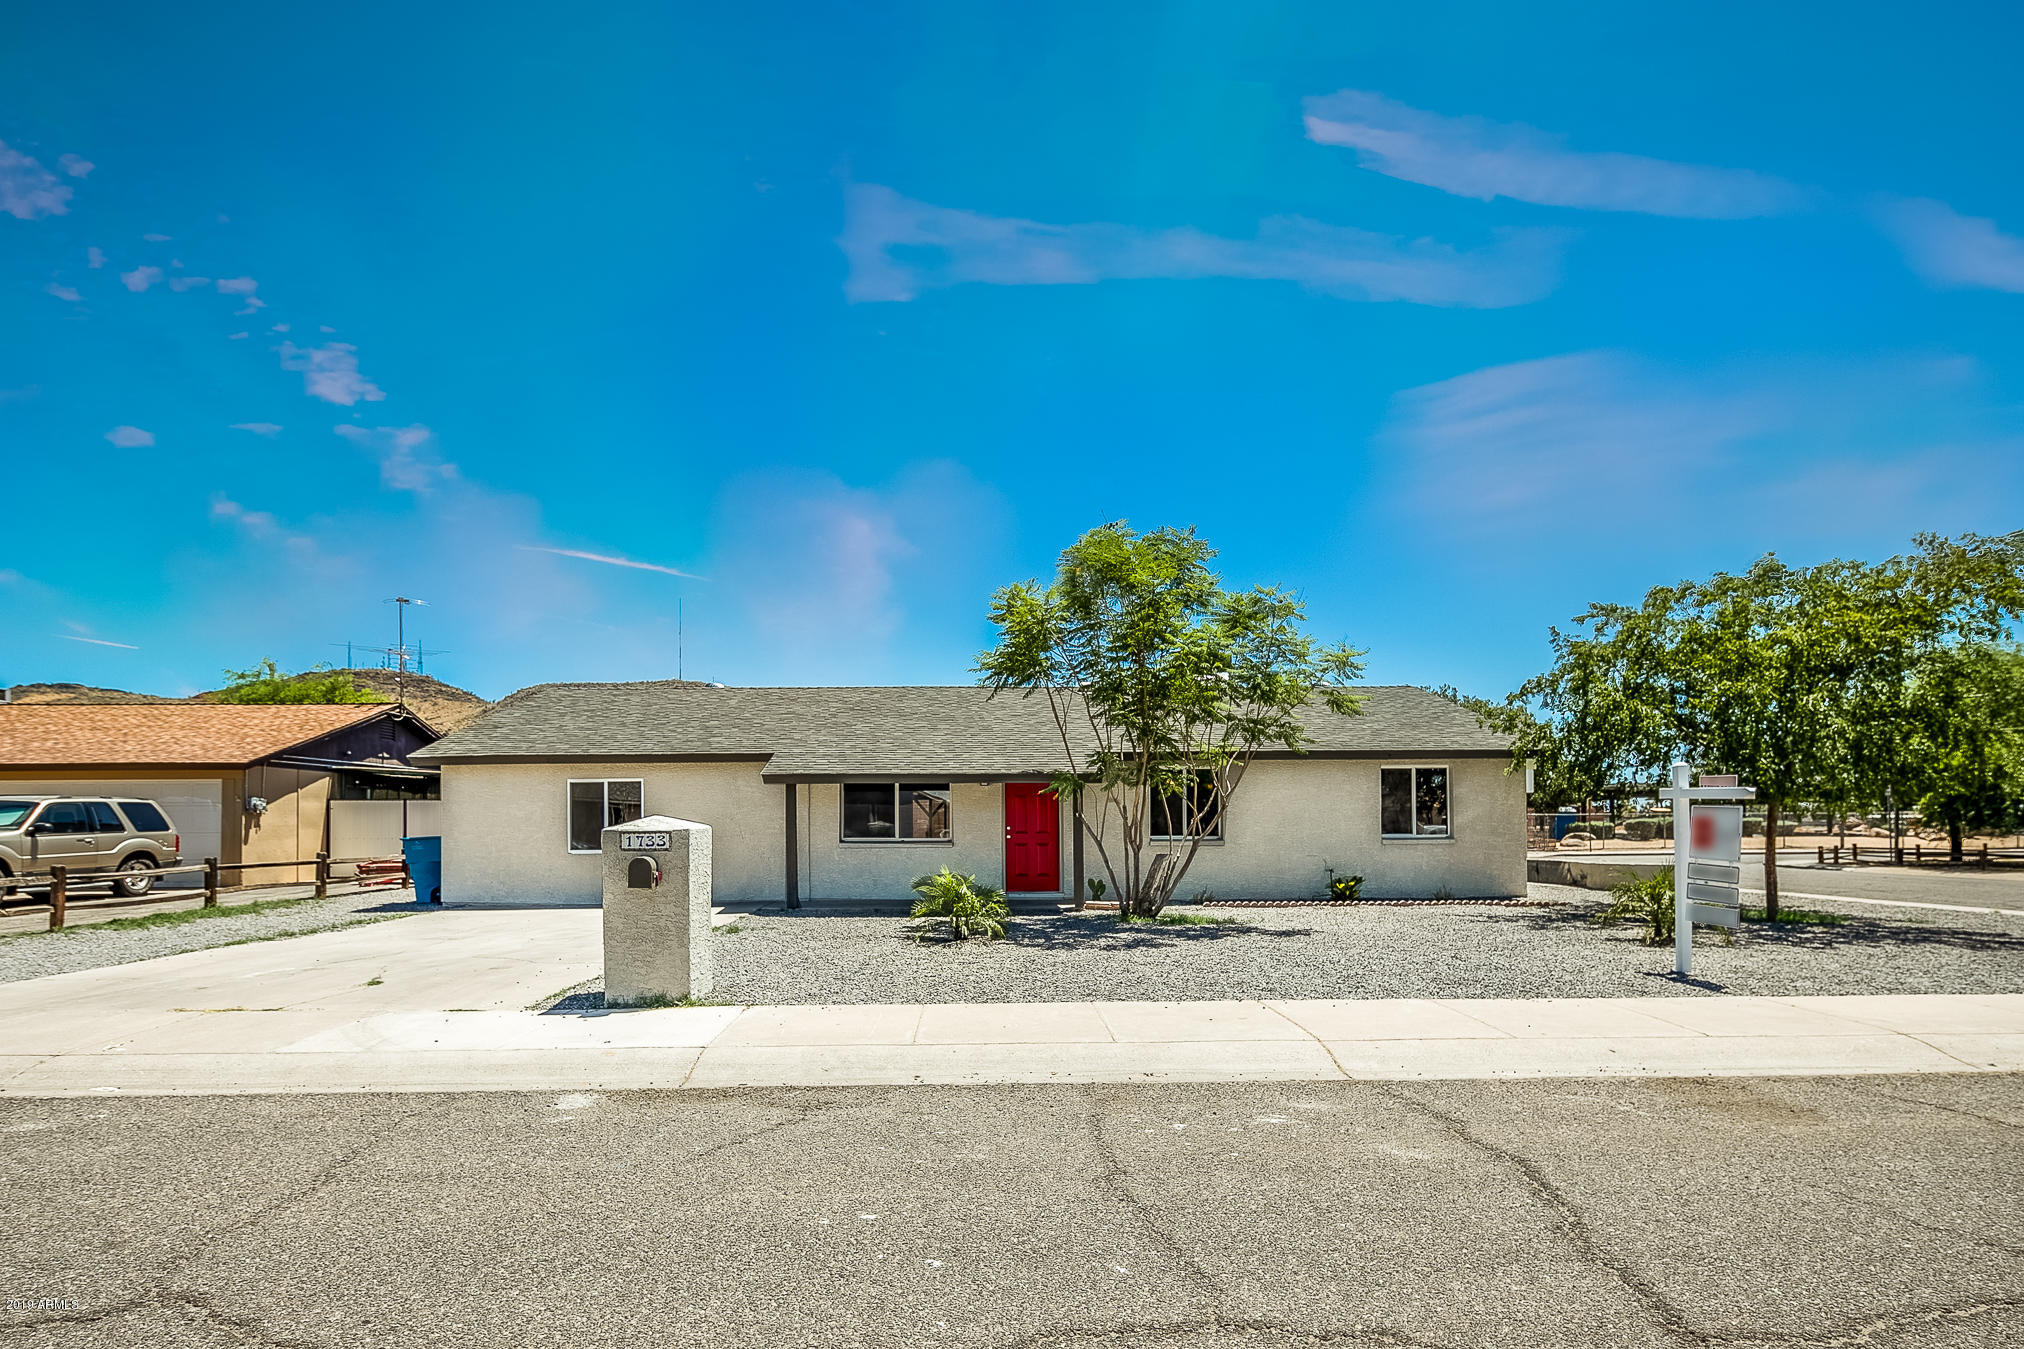 MLS 5948275 1733 W VOLTAIRE Avenue, Phoenix, AZ 85029 Phoenix AZ Moon Valley